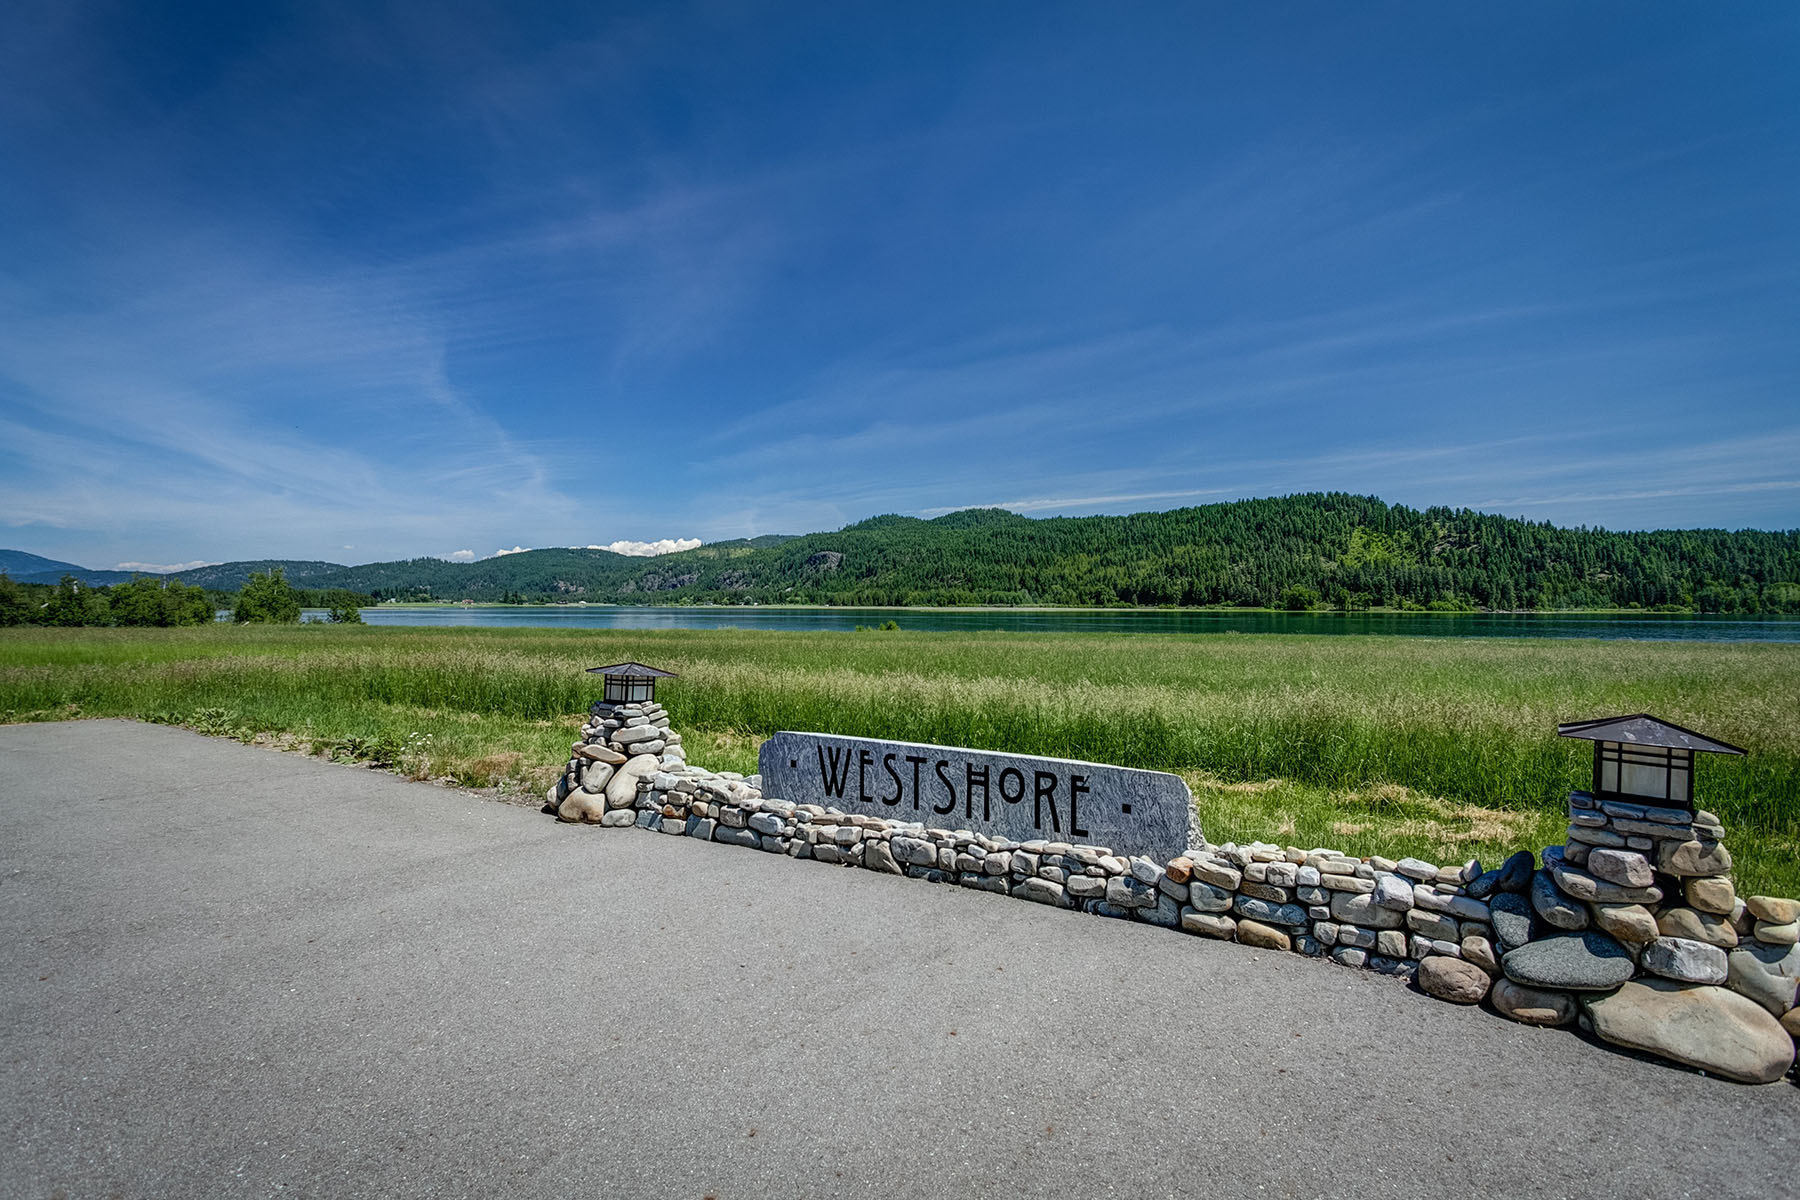 Terreno por un Venta en Westshore Waterfront Building Sites Lot 5 Westshore Way Laclede, Idaho, 83841 Estados Unidos